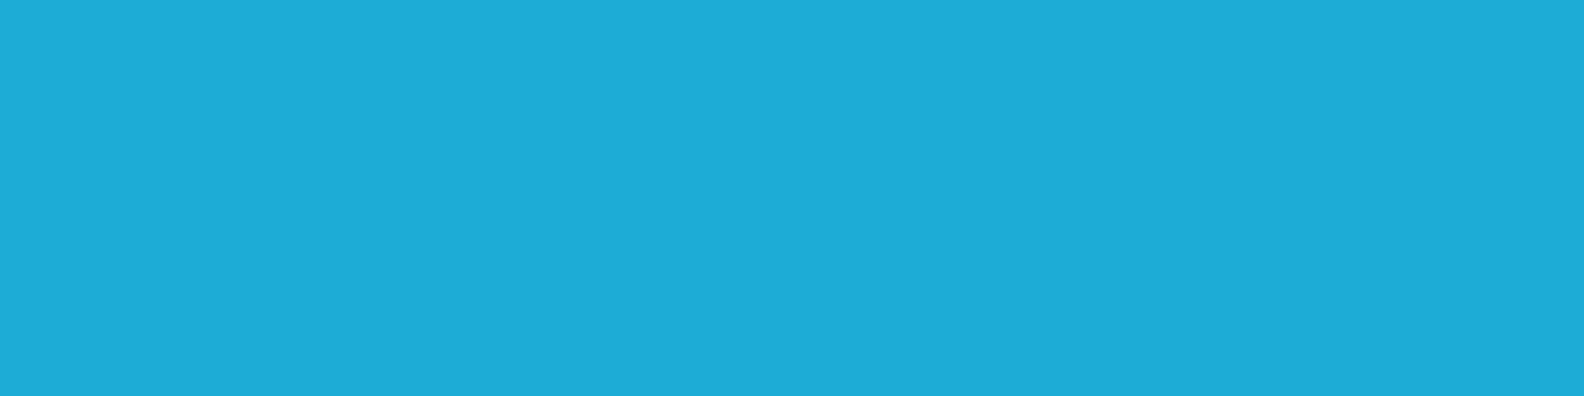 1584x396 Bright Cerulean Solid Color Background